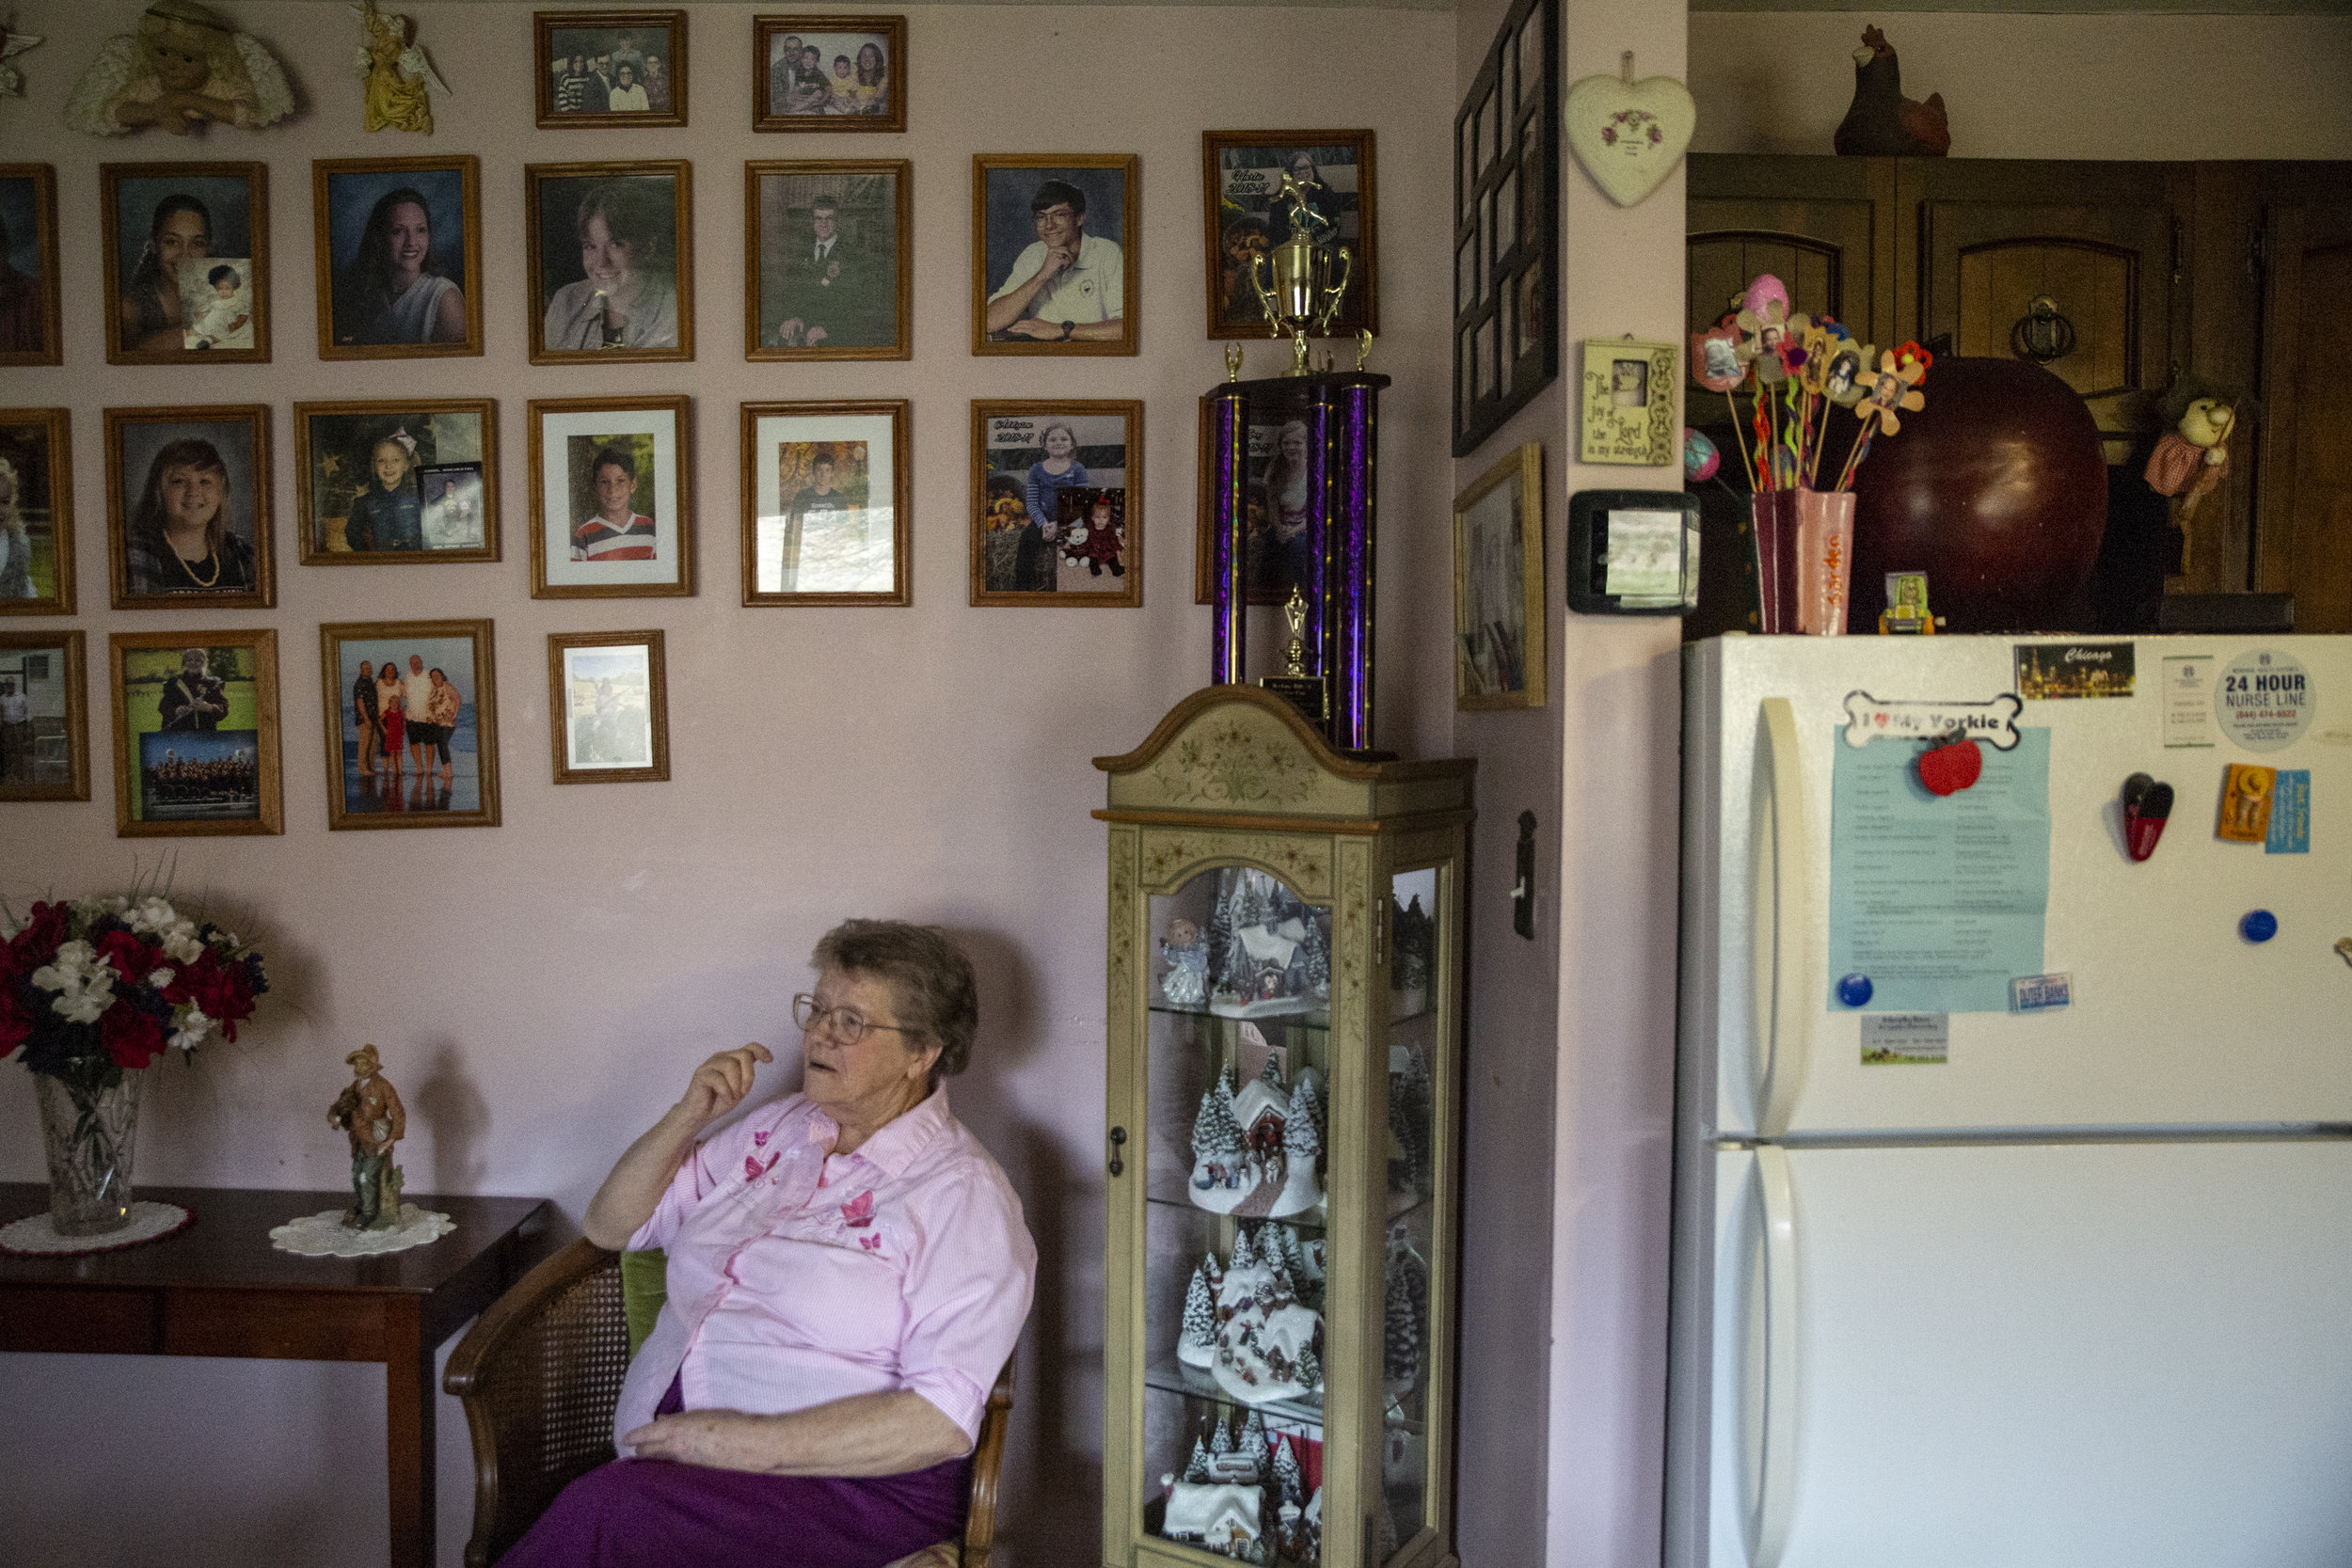 At 80, Donna Russell is one of Sharpsburg's oldest residents. Proximity to family is important to Donna, who lives on the same property as multiple family members, each with their own subdivision.